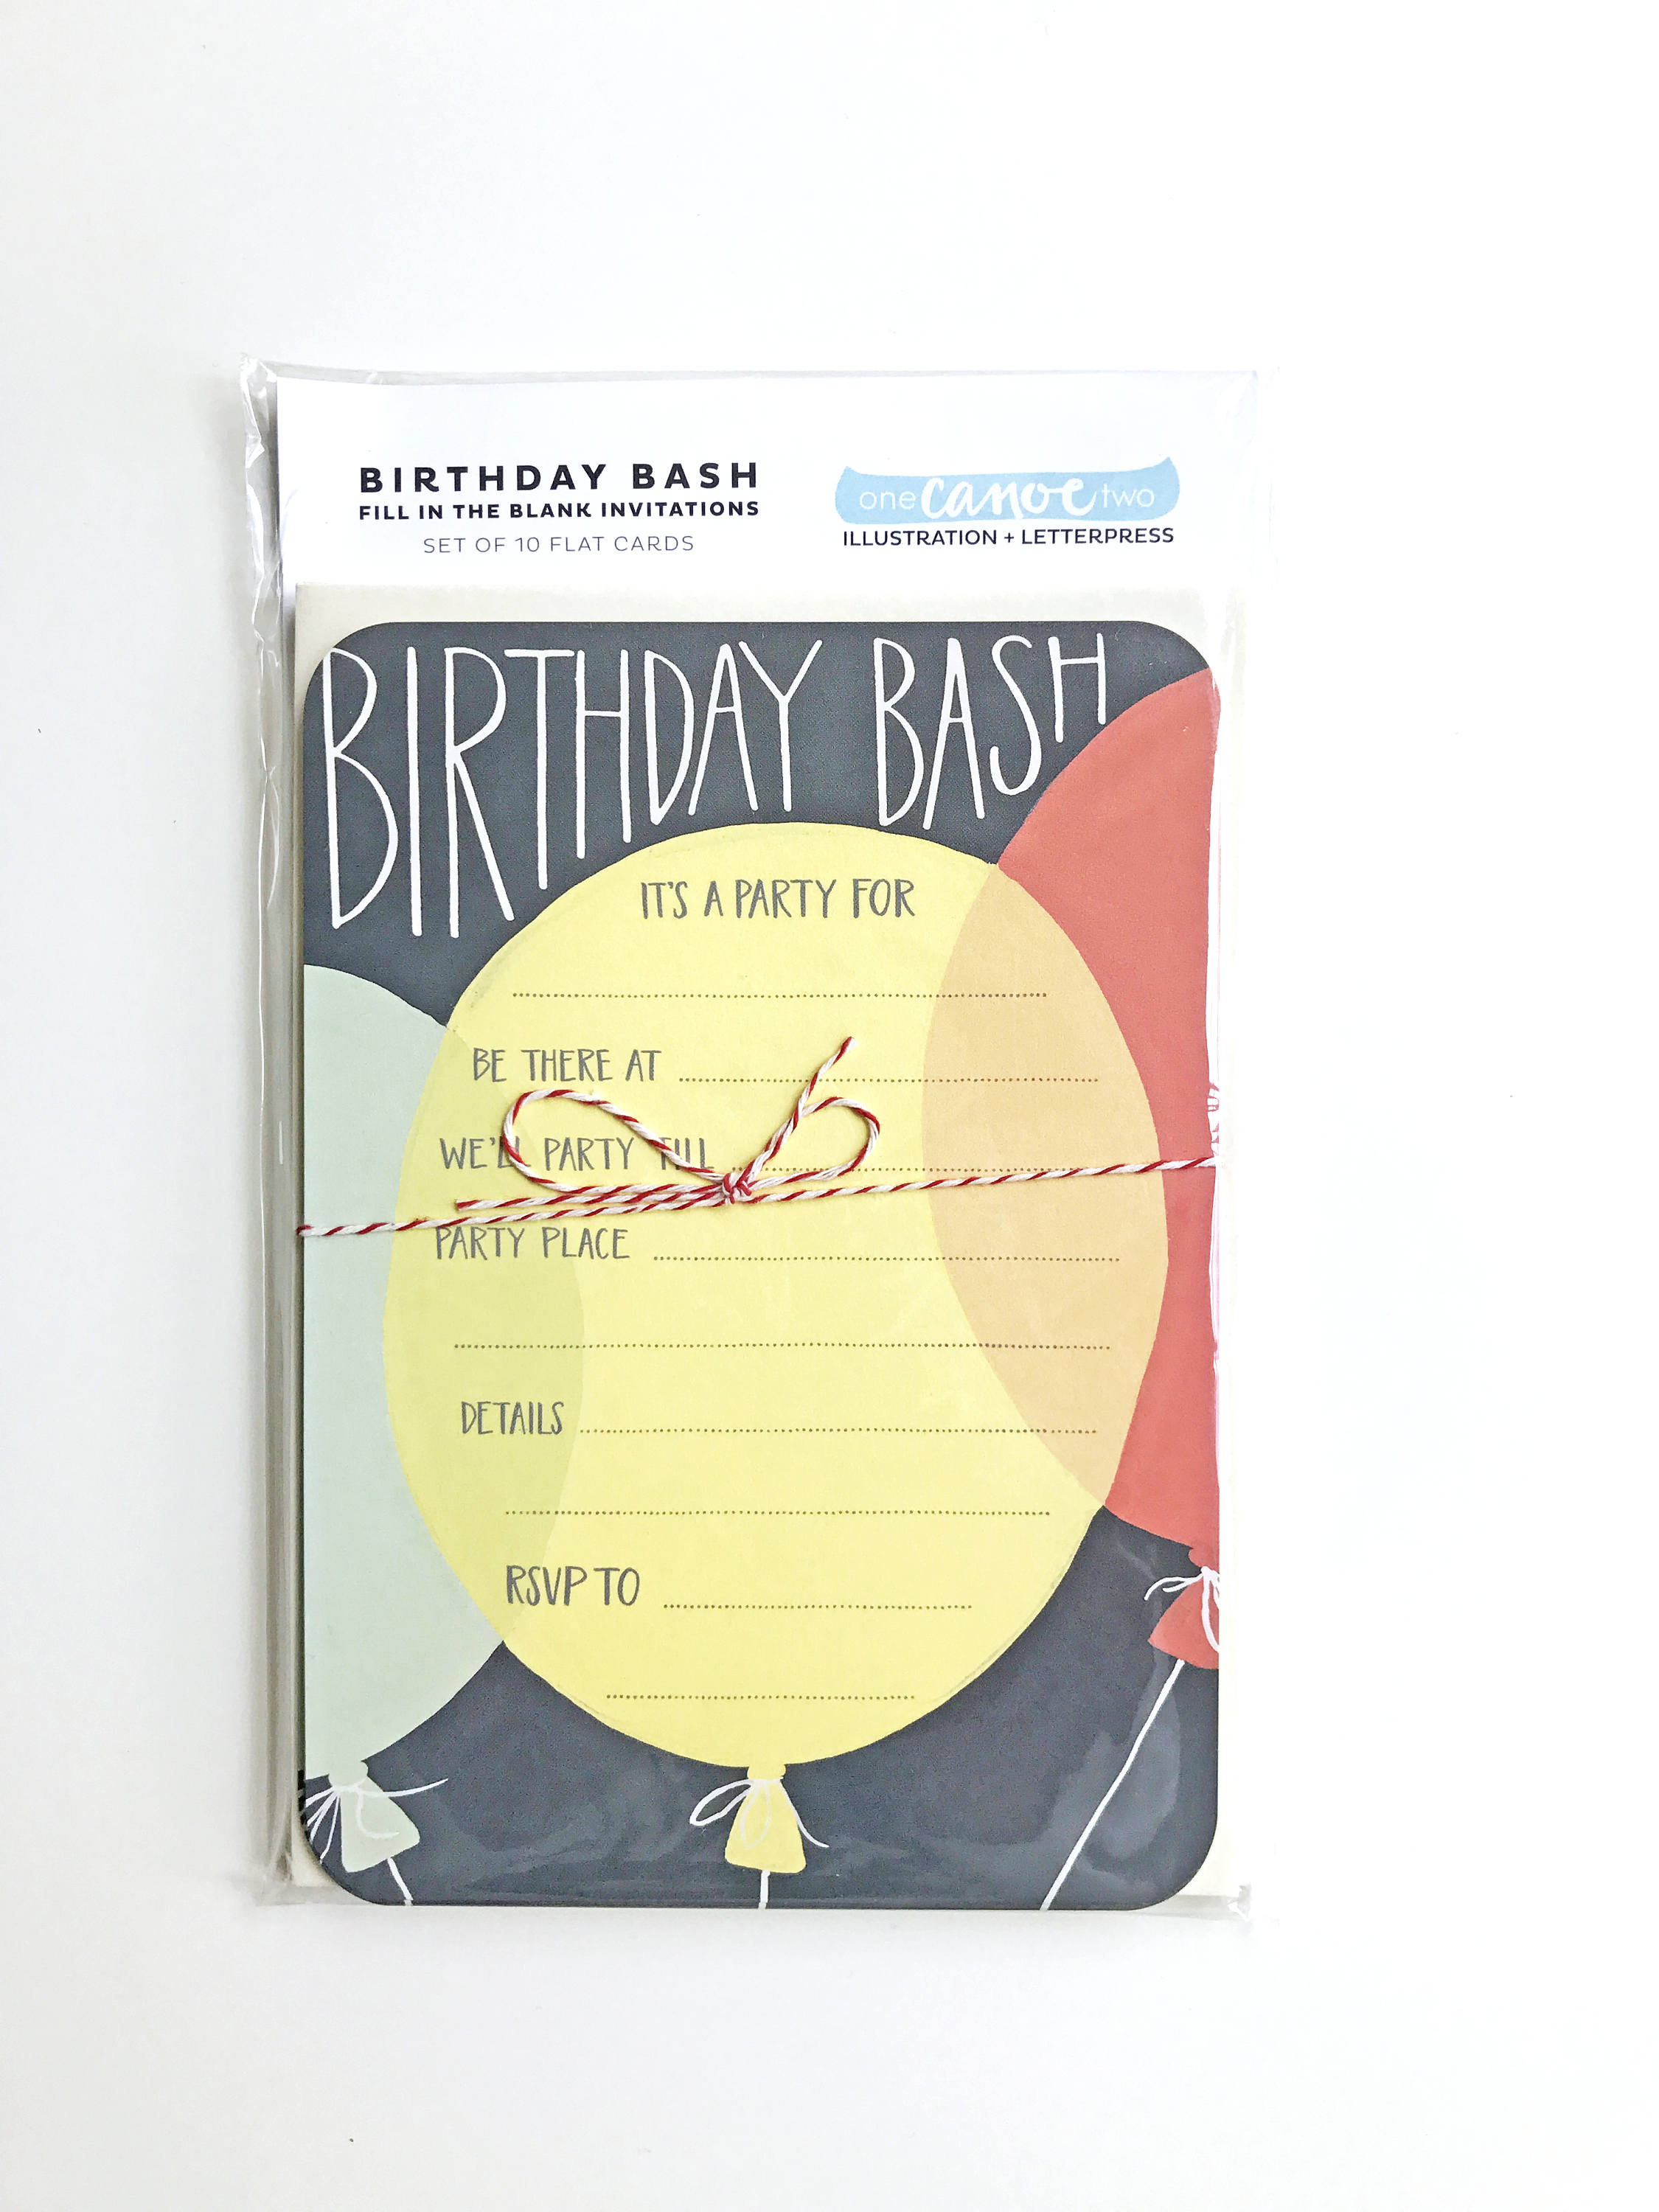 birthday party invitations fill in the blank invitations set of